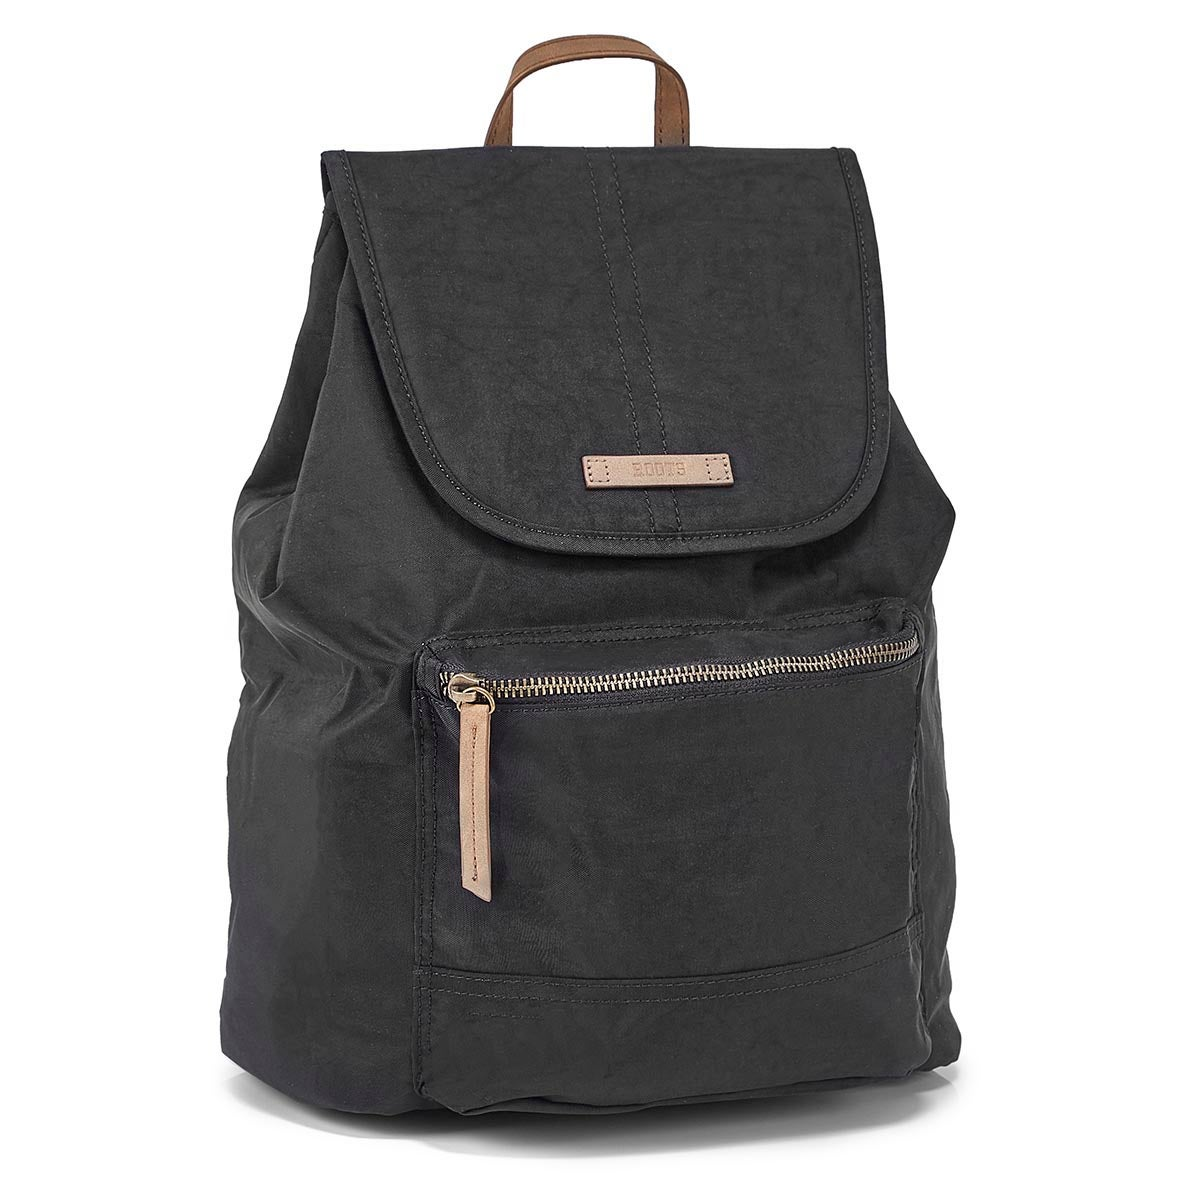 Lds Roots73 black flap backpack